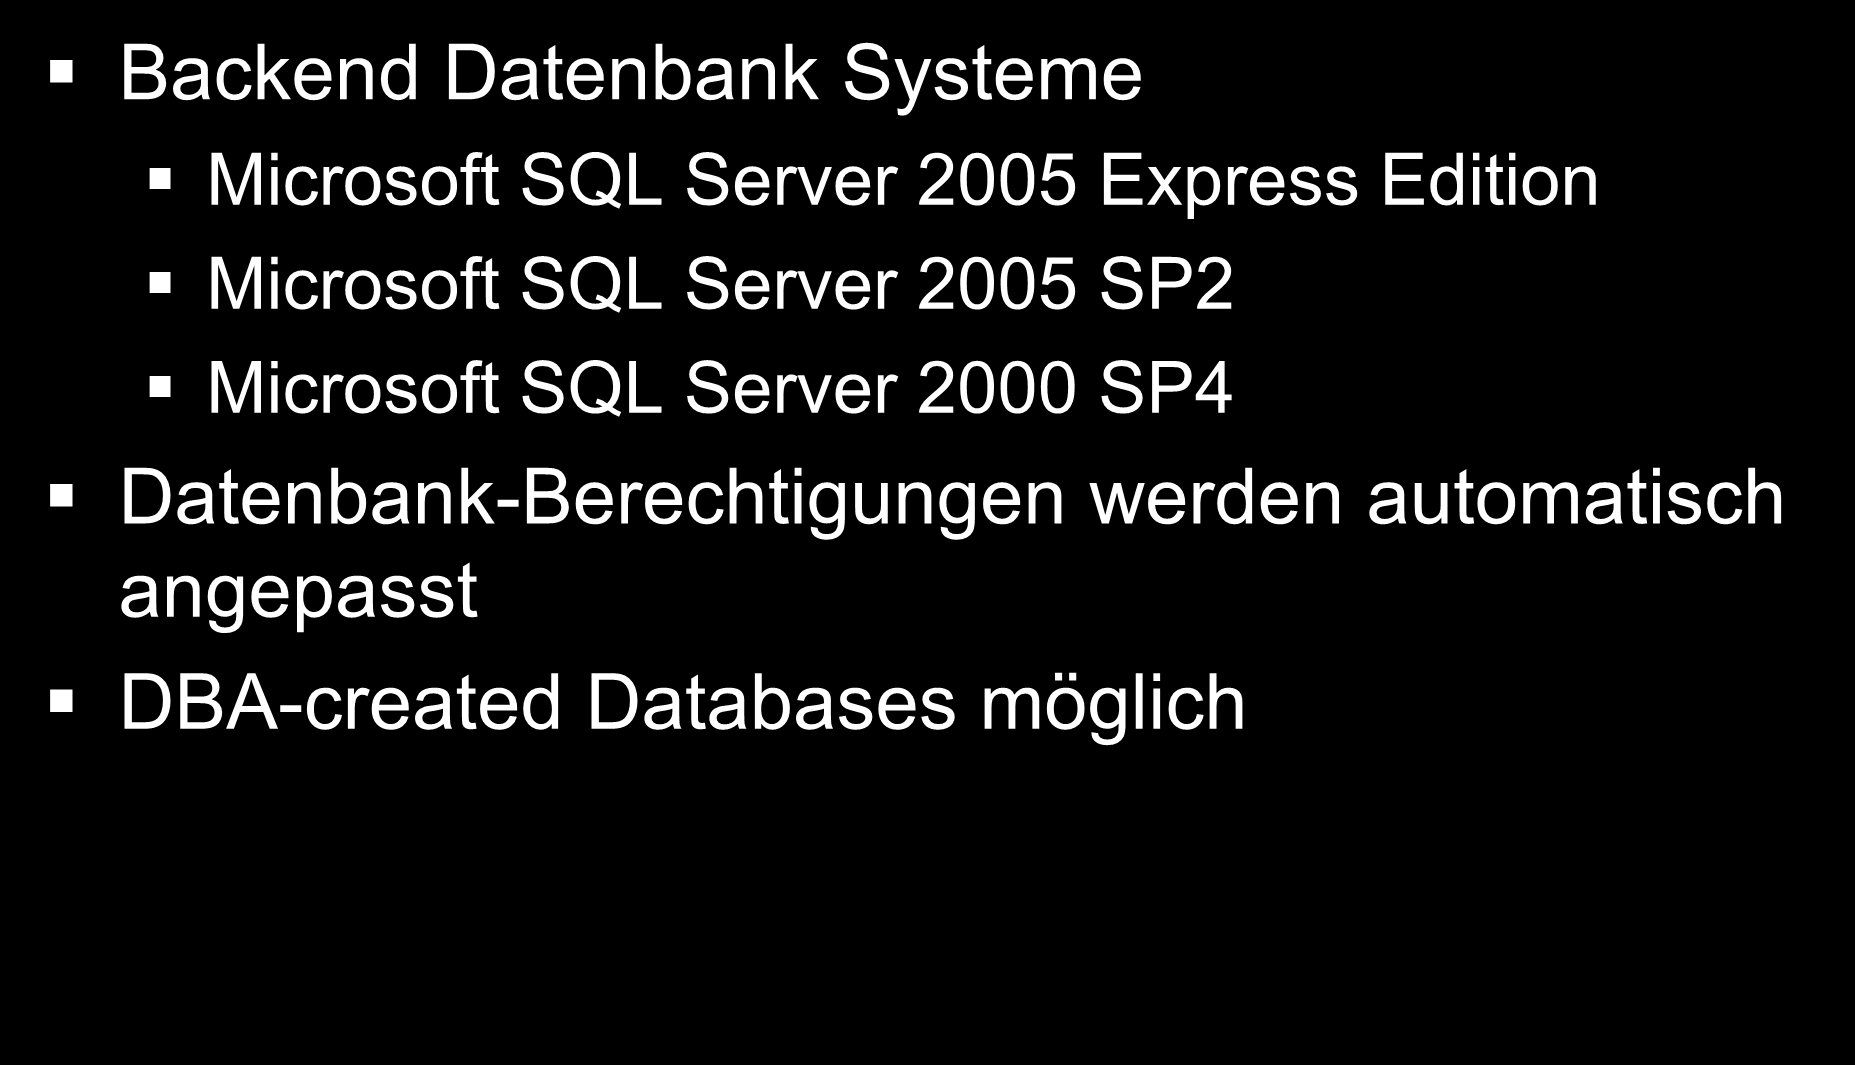 Datenbank System Installation Backend Datenbank Systeme Microsoft SQL Server 2005 Express Edition Microsoft SQL Server